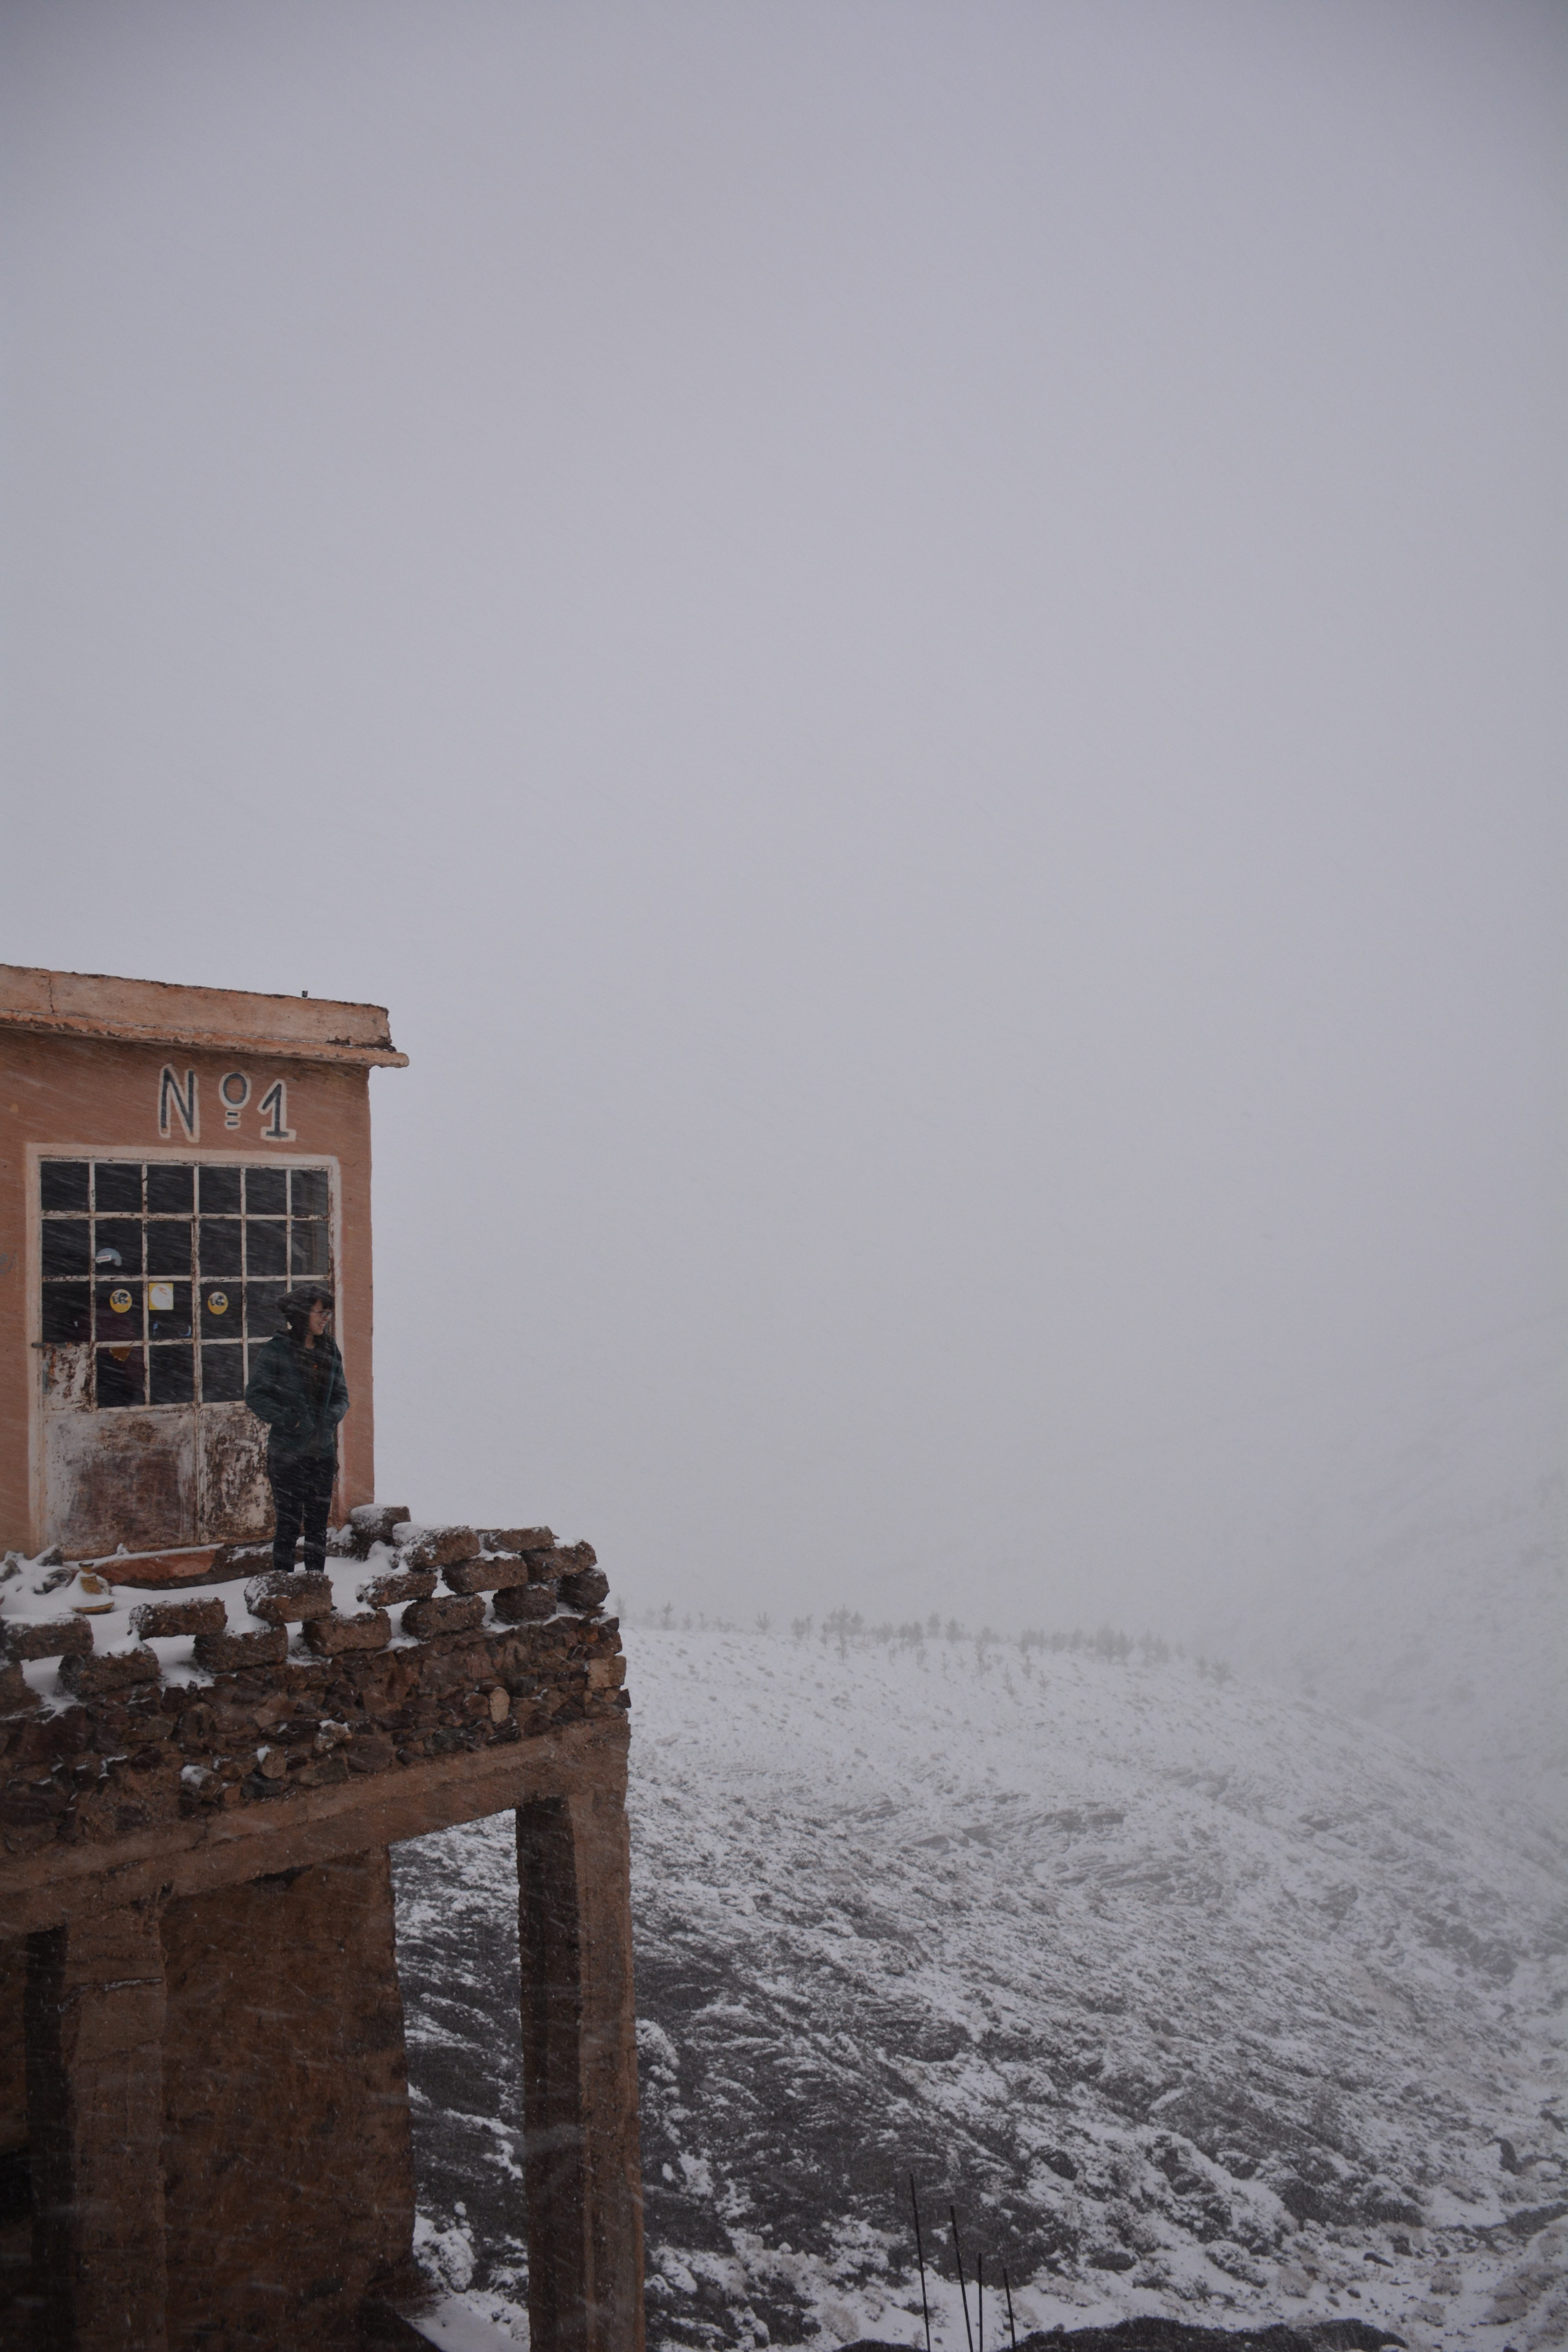 Unexpected snow on the High Atlas Mountains